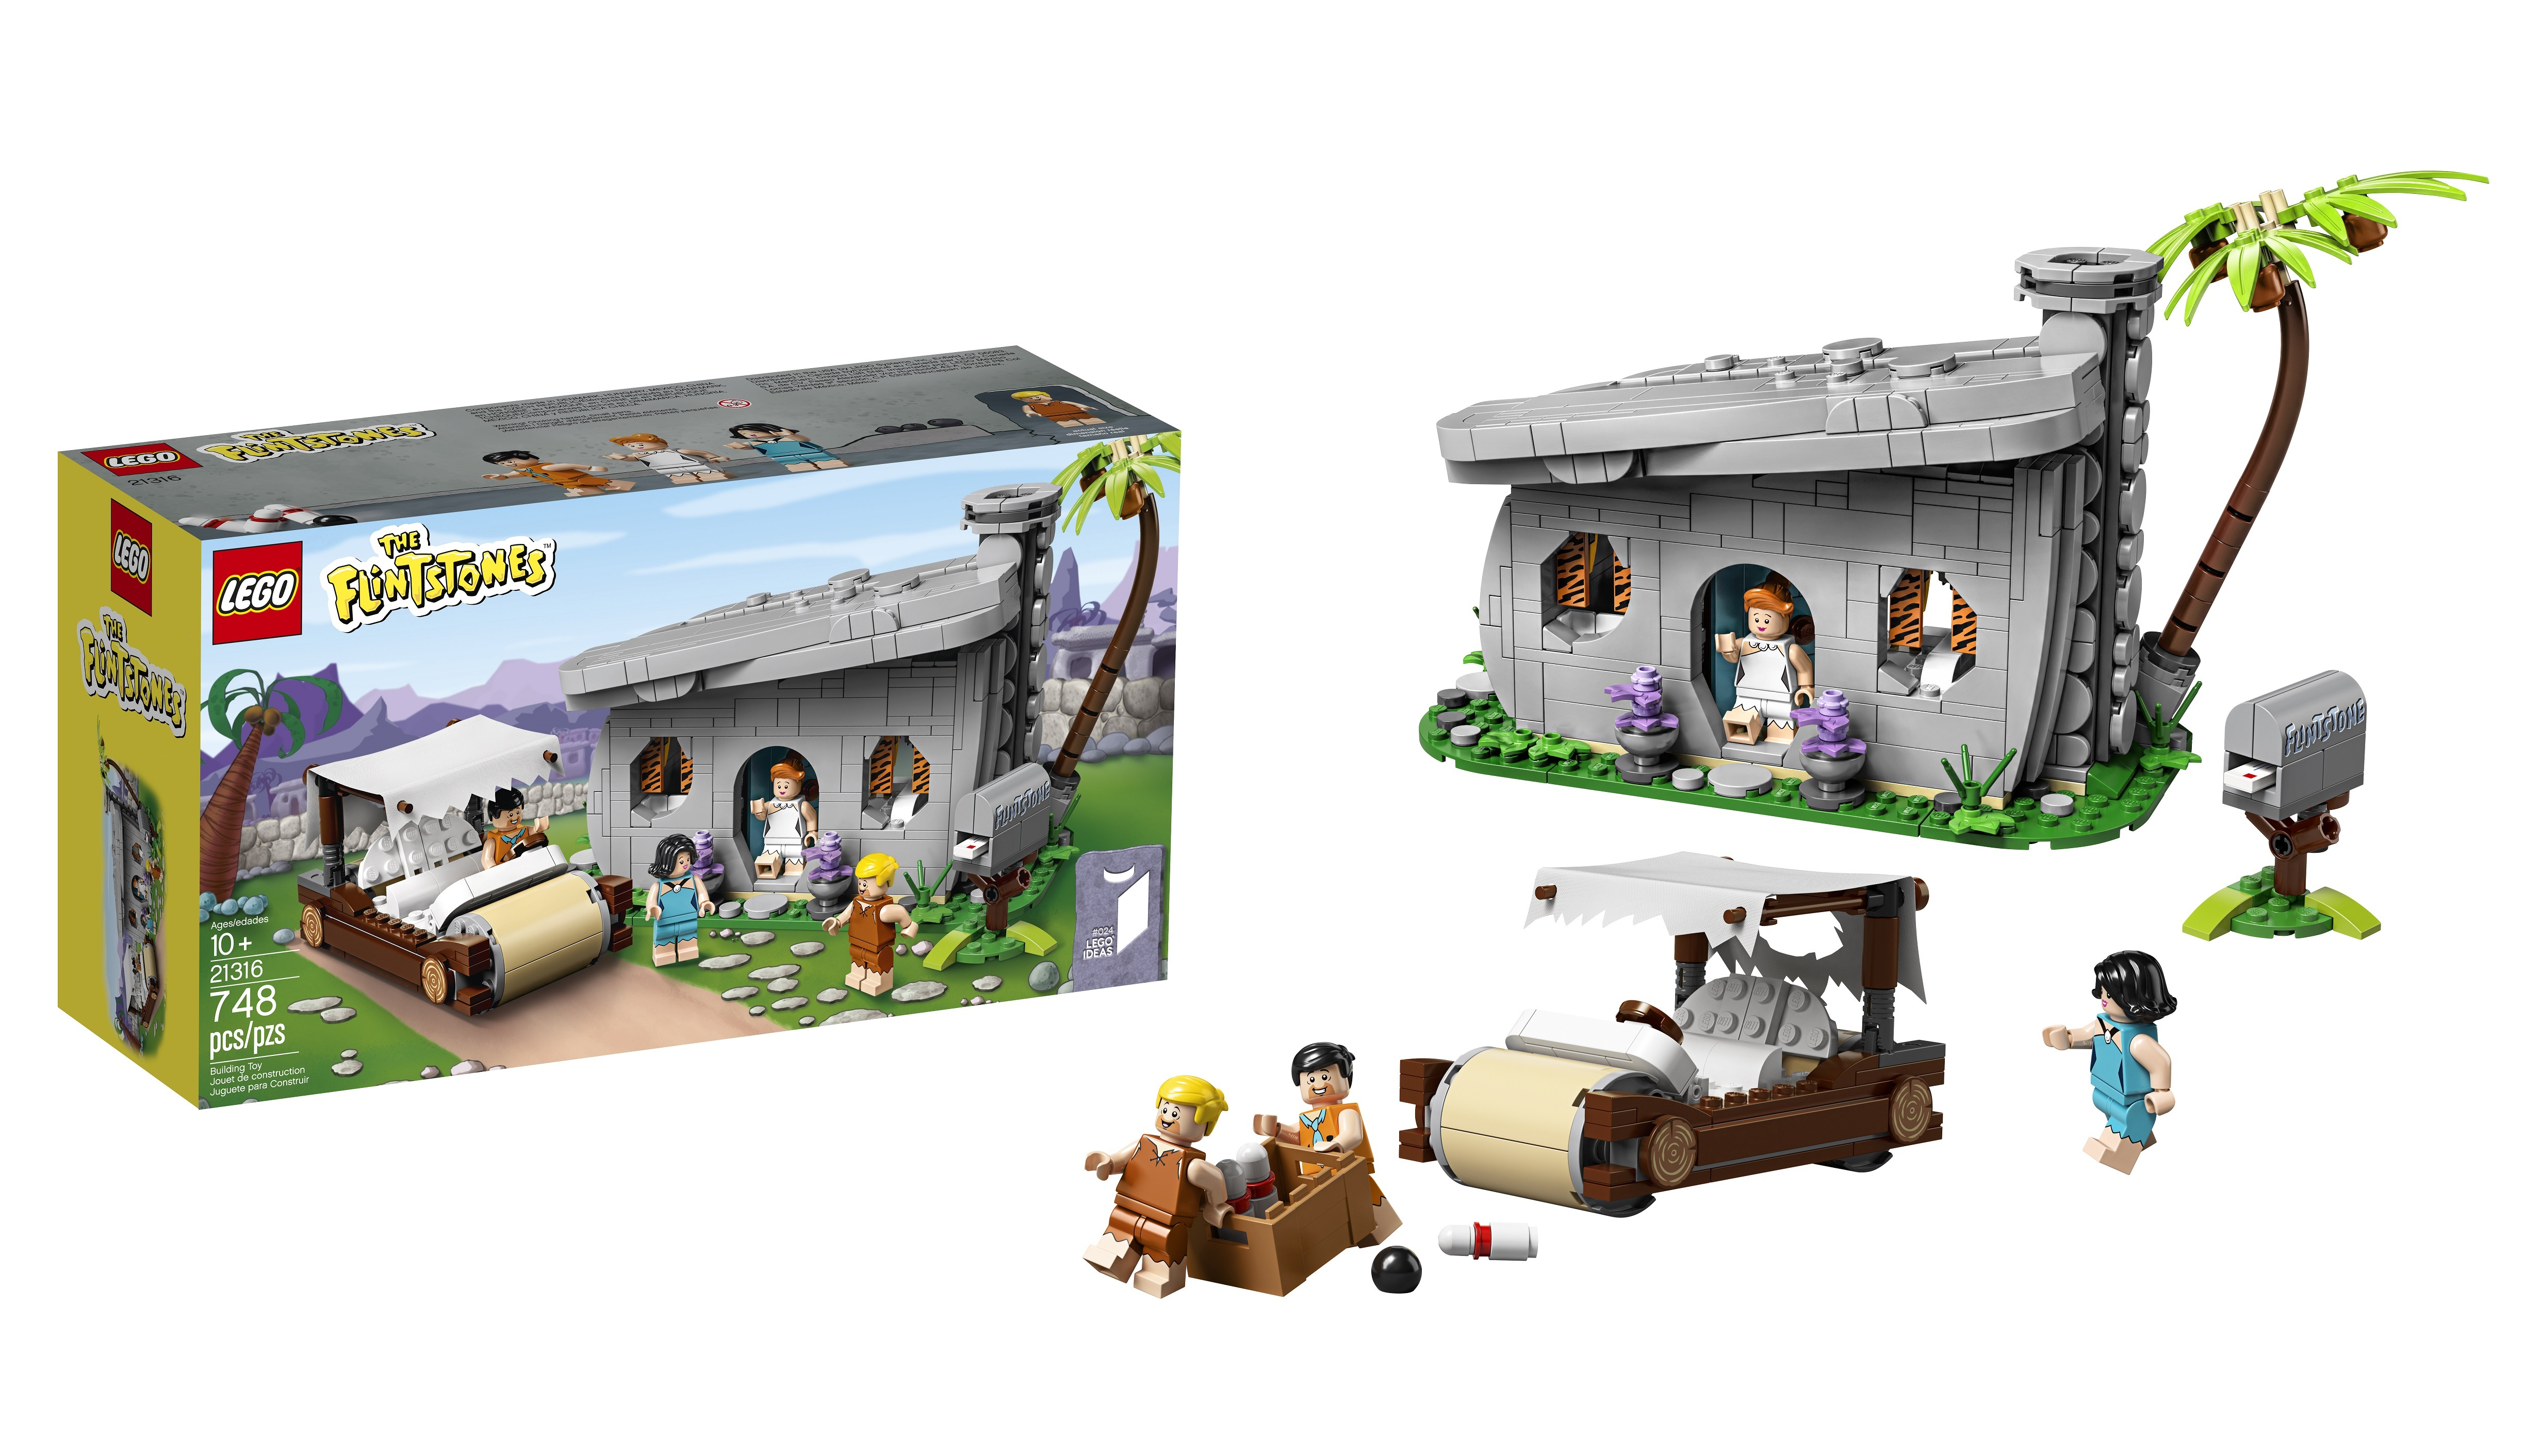 Official reveal of 21316 The Flintstones LEGO Ideas set! – Jay's